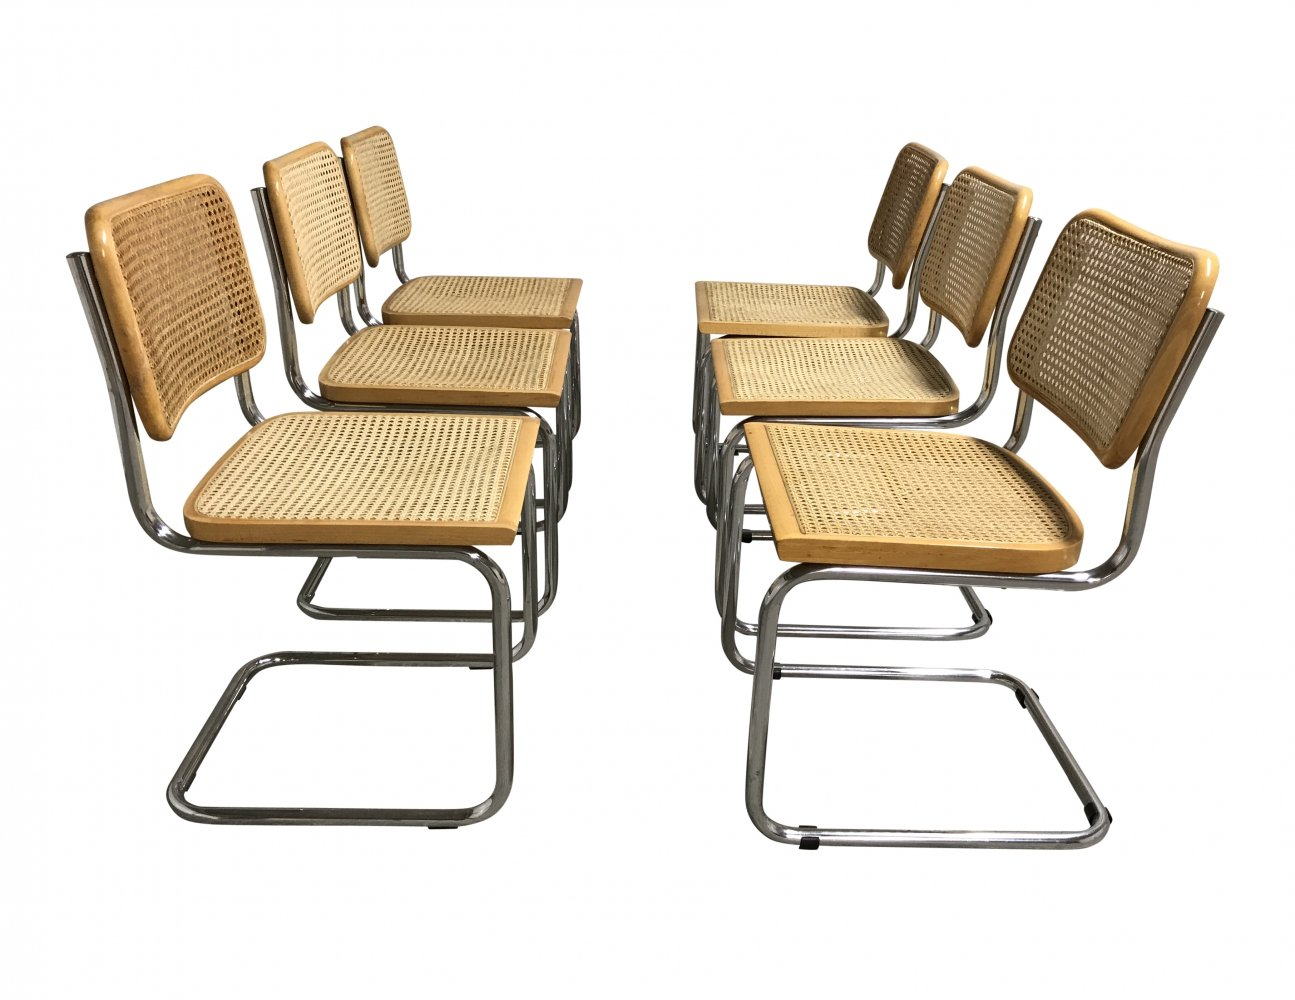 Set of 6 Vintage Marcel Breuer Cesca chairs, Italy 1970s